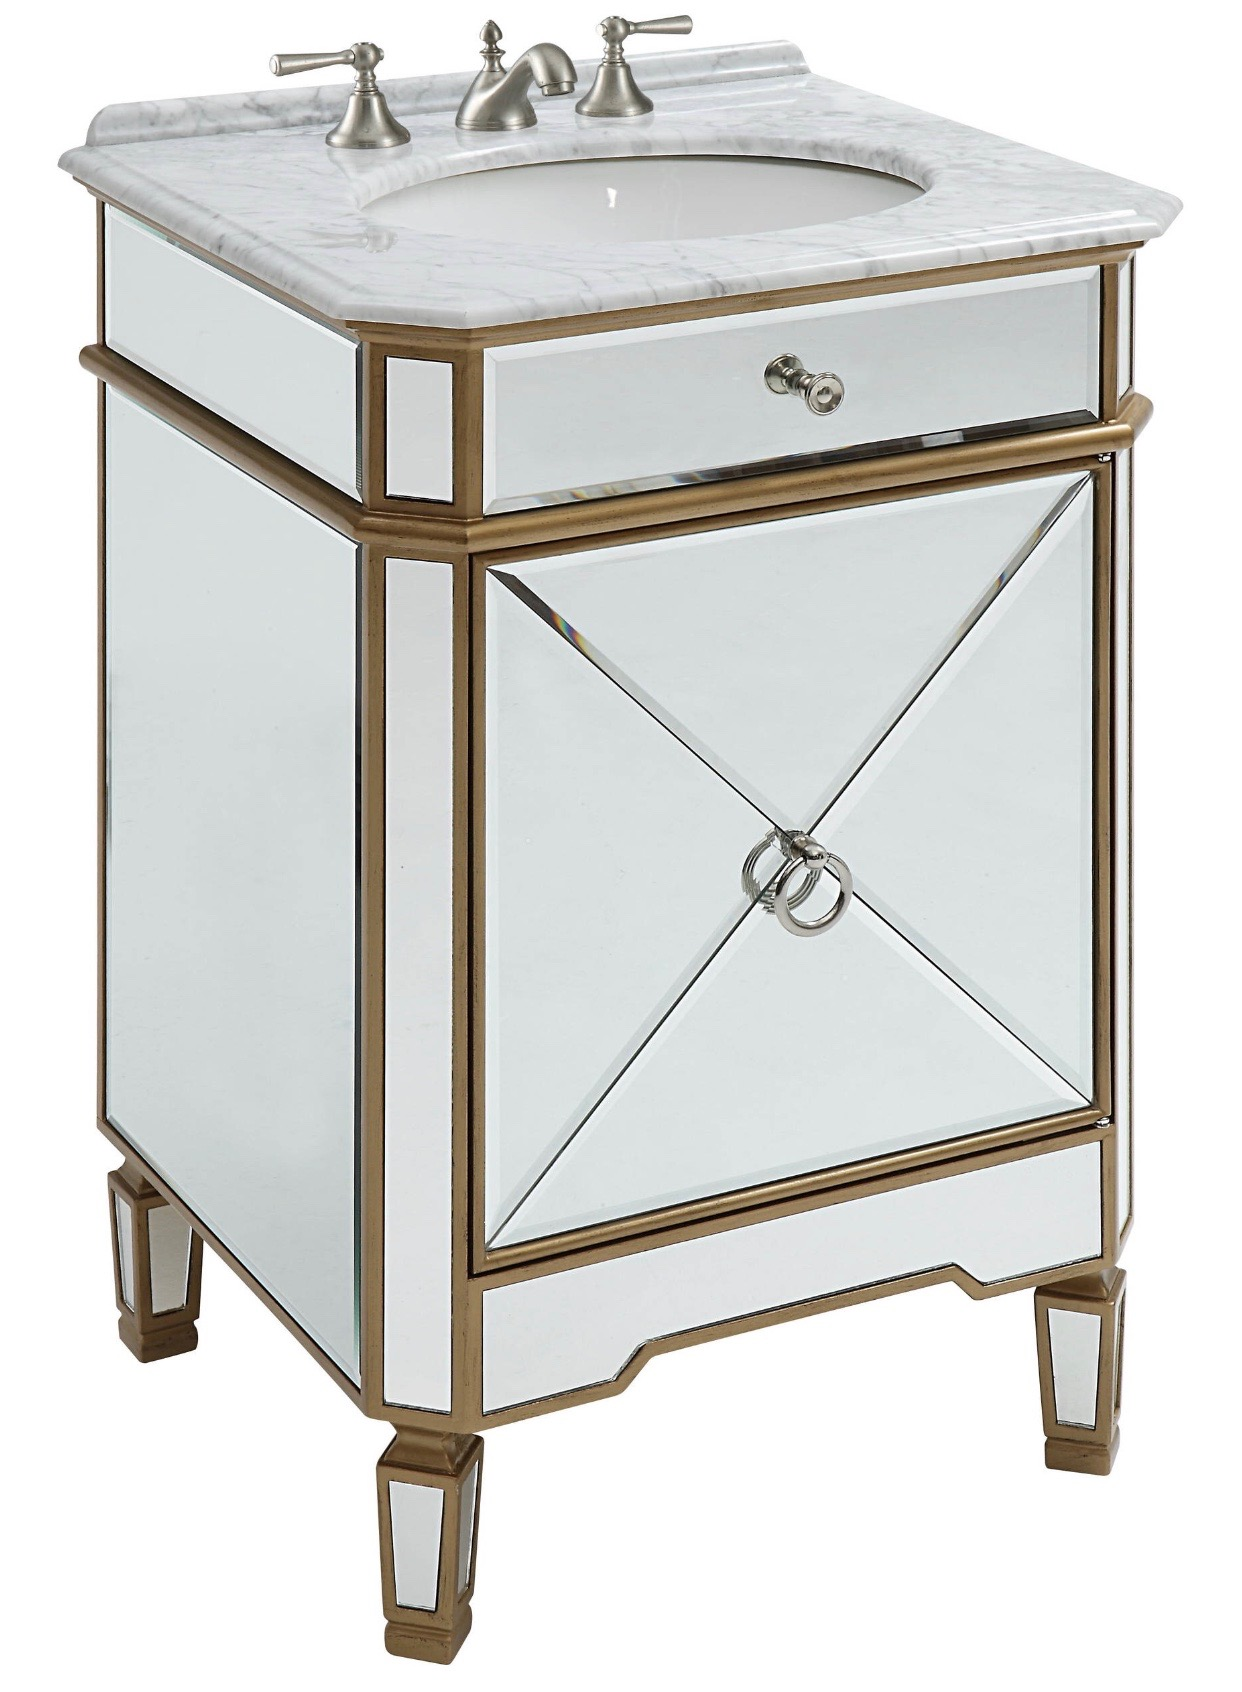 The vanity sink for my powder room.Along with gold accents in the fixtures.